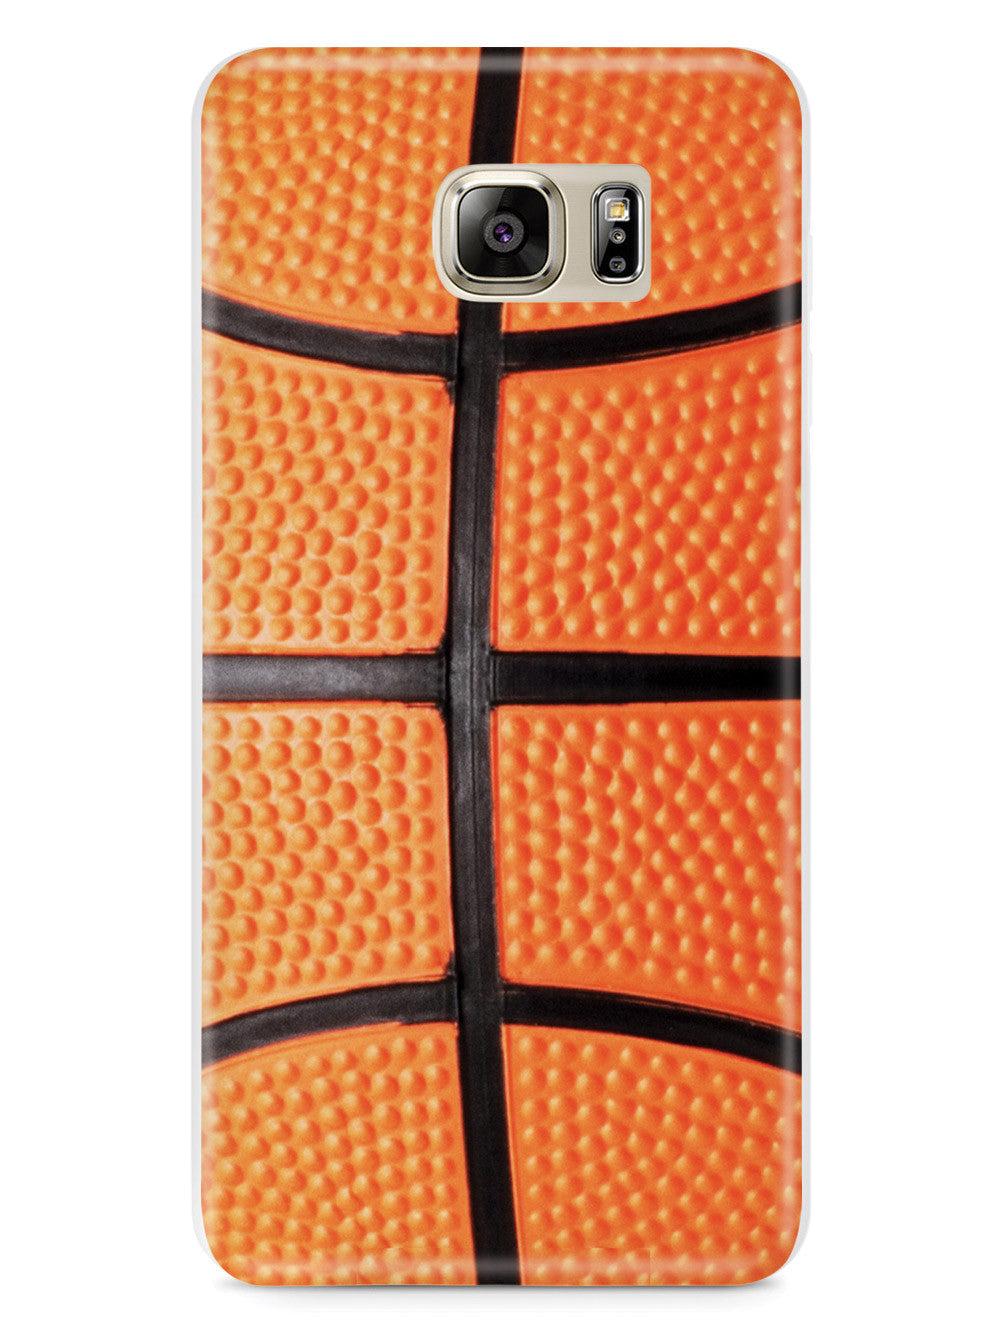 Detailed Textured Basketball Case